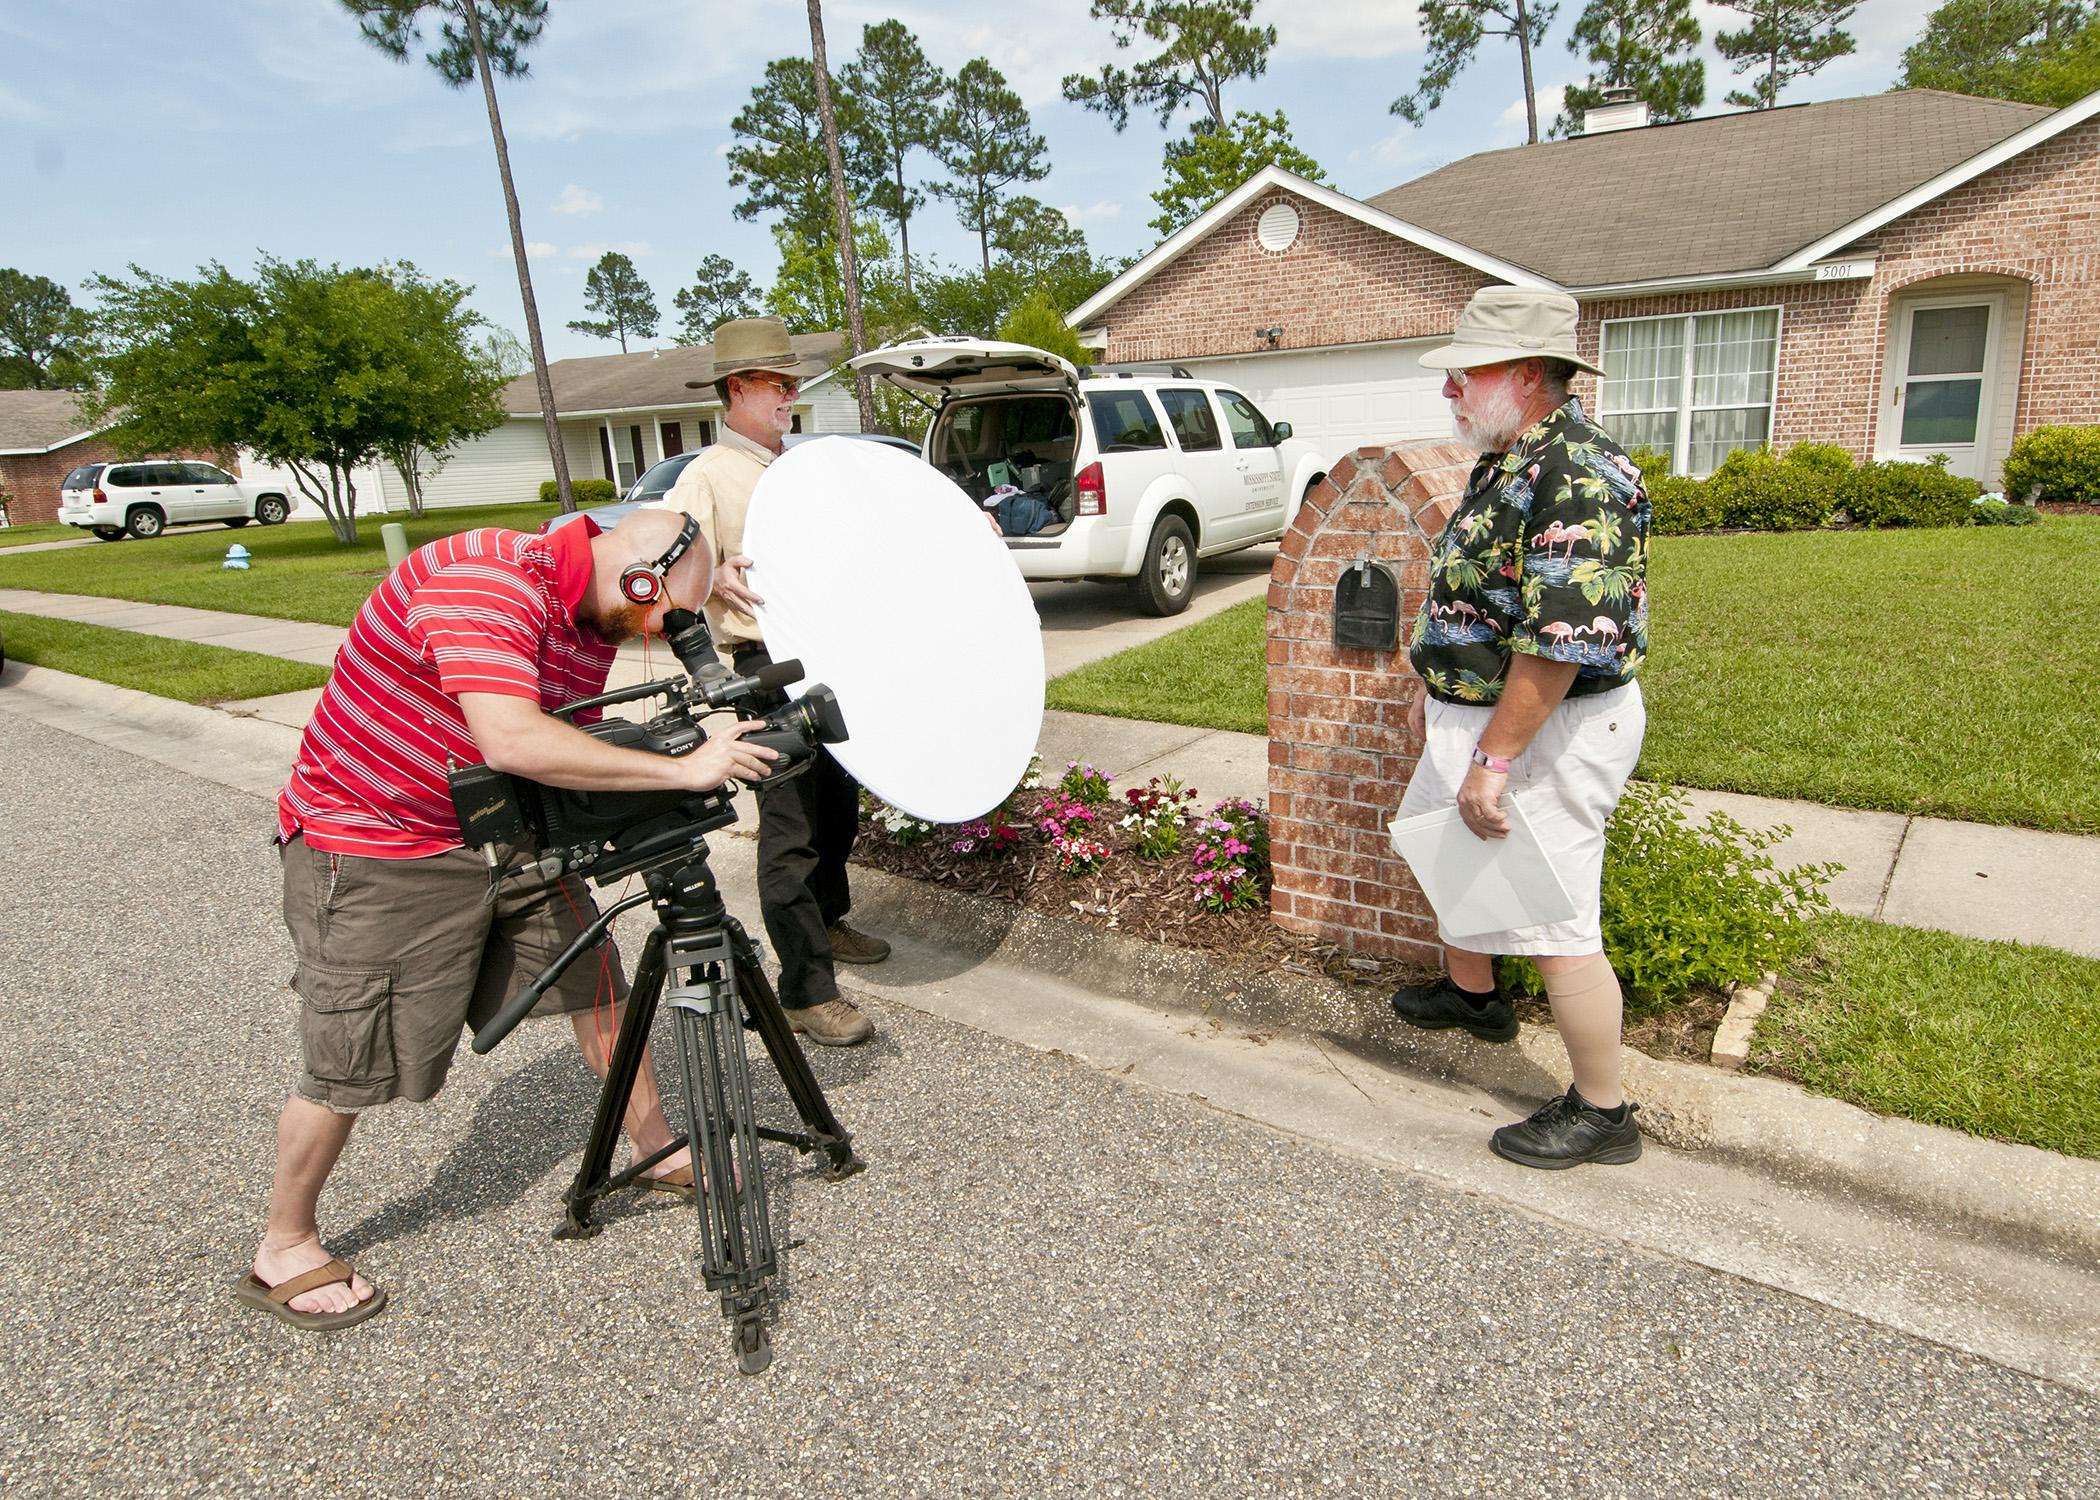 After a couple of skin cancer scares, Southern Gardening personality Gary Bachman wears sunscreen and a hat when working outdoors on the set or in the garden. (File photo by MSU Ag Communications)